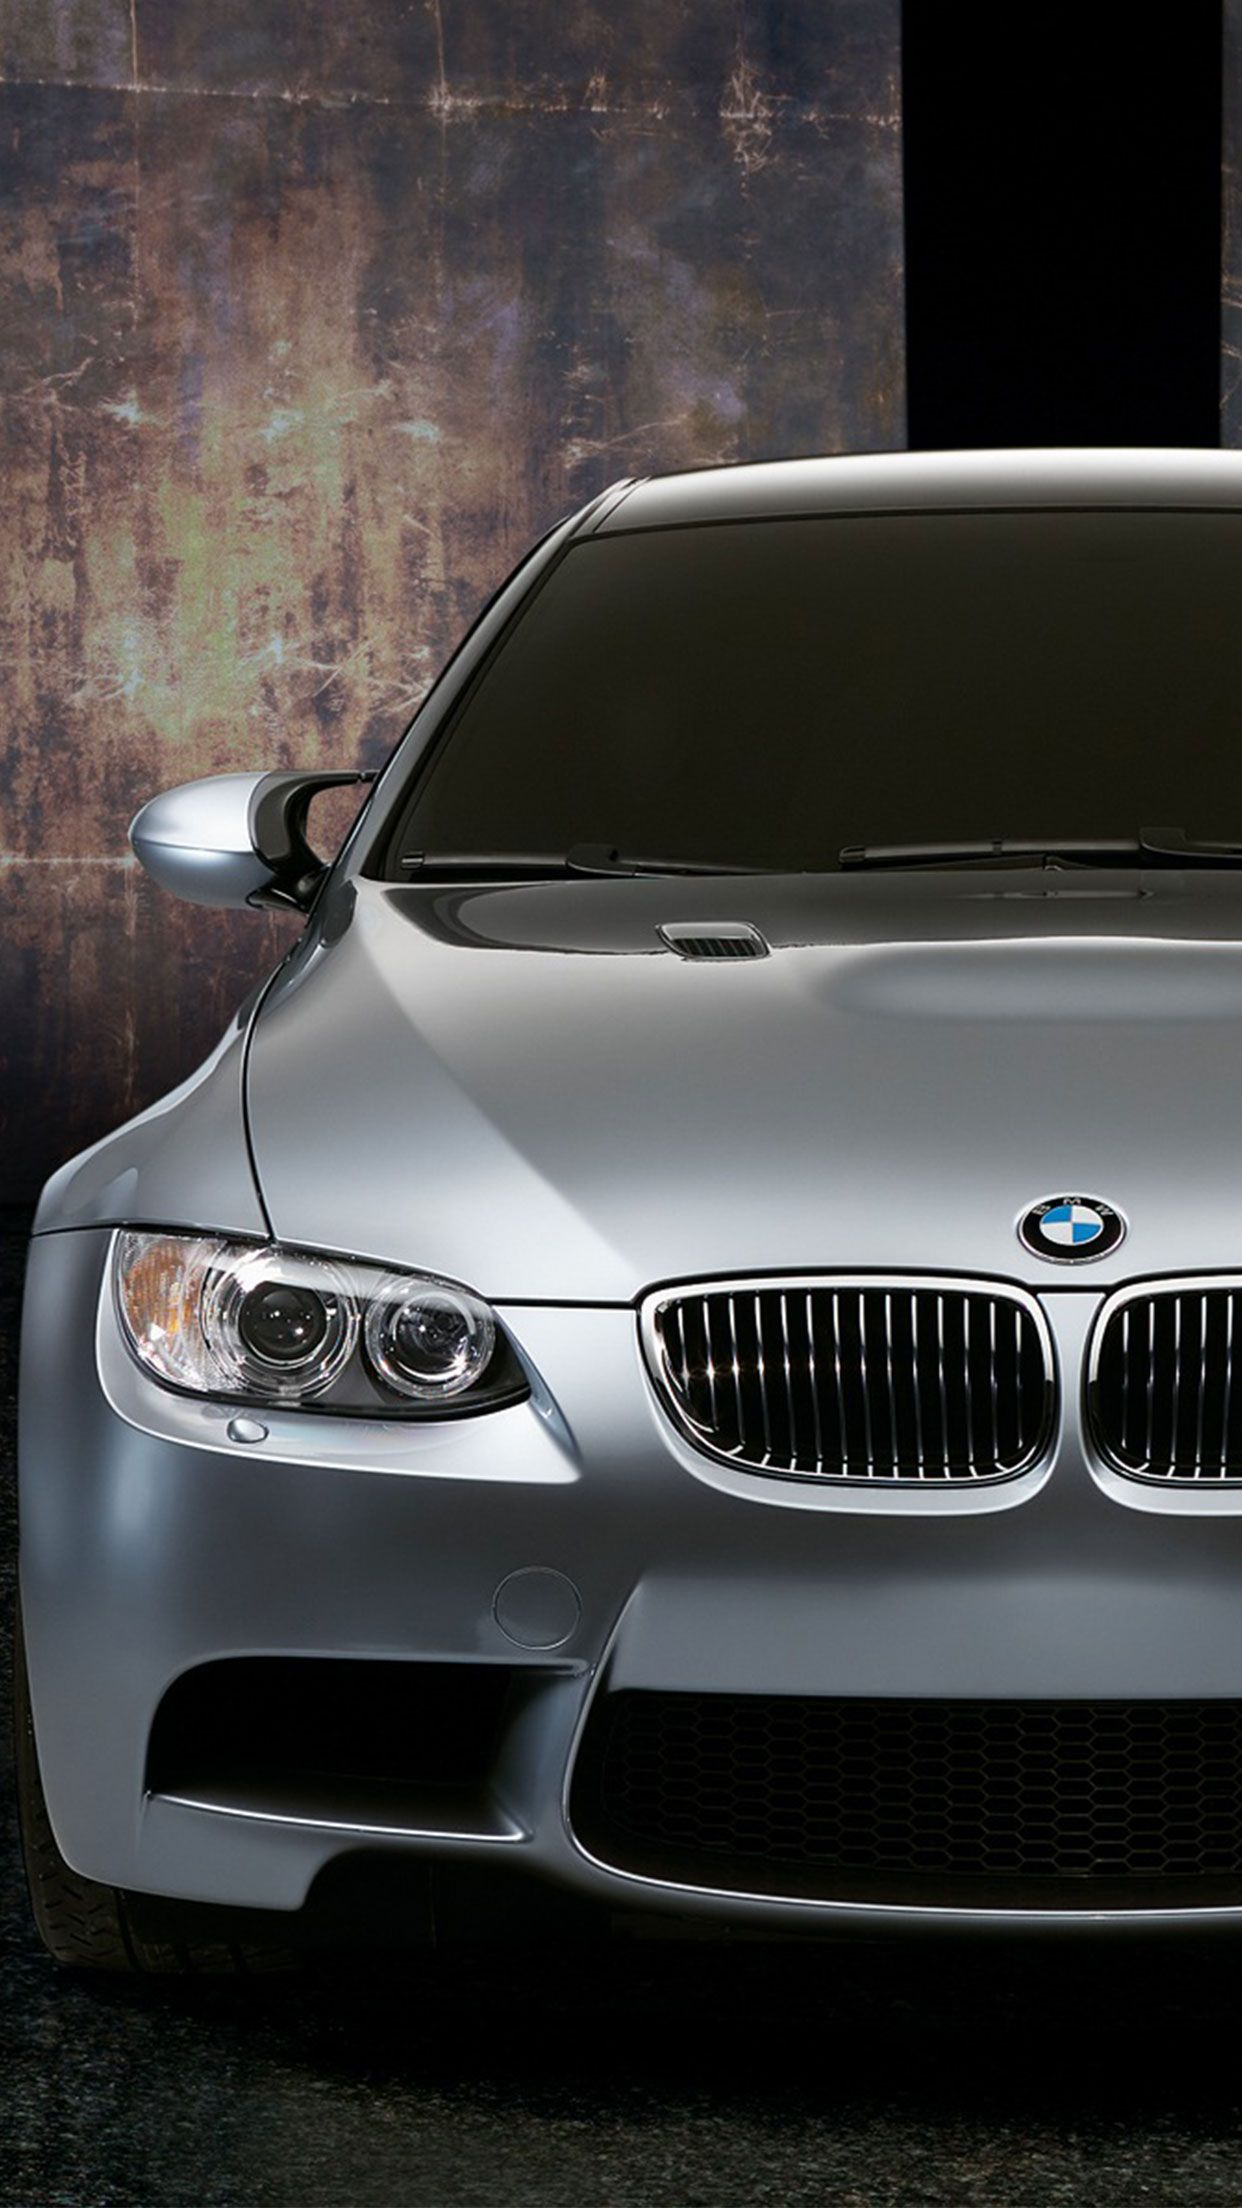 Grey Bmw Car Wallpaper Iphone Android Bmw Car Wallpaper More